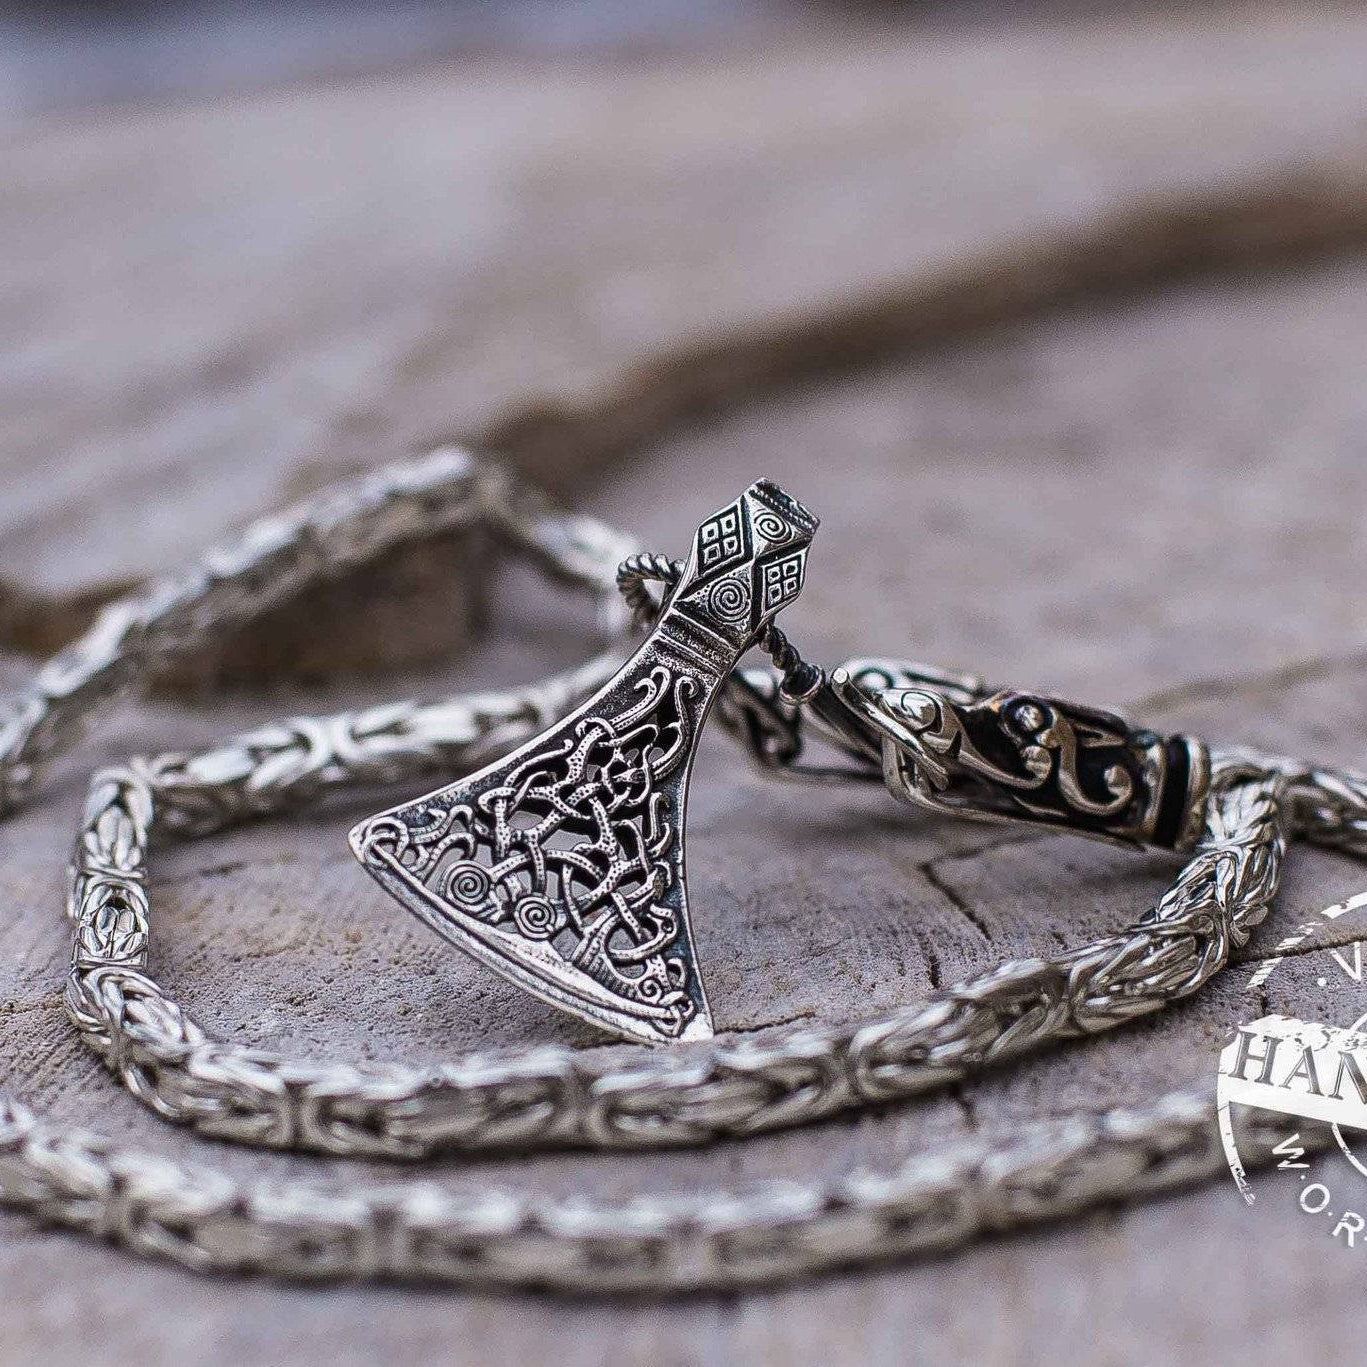 Set of Sterling Silver Square Viking Chain with Wolf Tips and Viking Axe Pendant - VikingsBrand